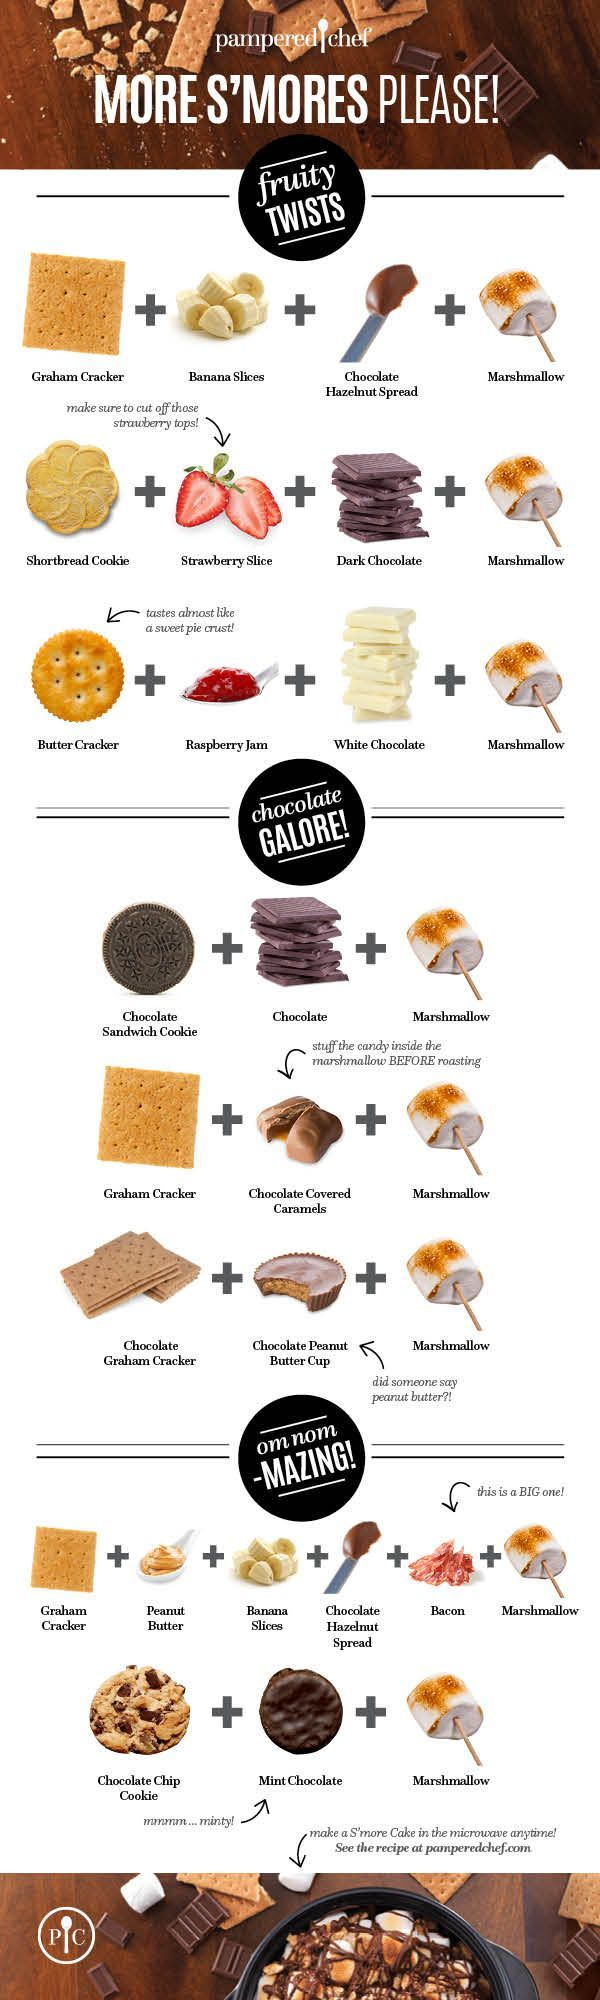 Here's some mouthwatering s'more combinations that go above the original recipe and make you a happy camper all year long. Indoor campers tip: use the stovetop, microwave, or broiler in place of a fire pit.